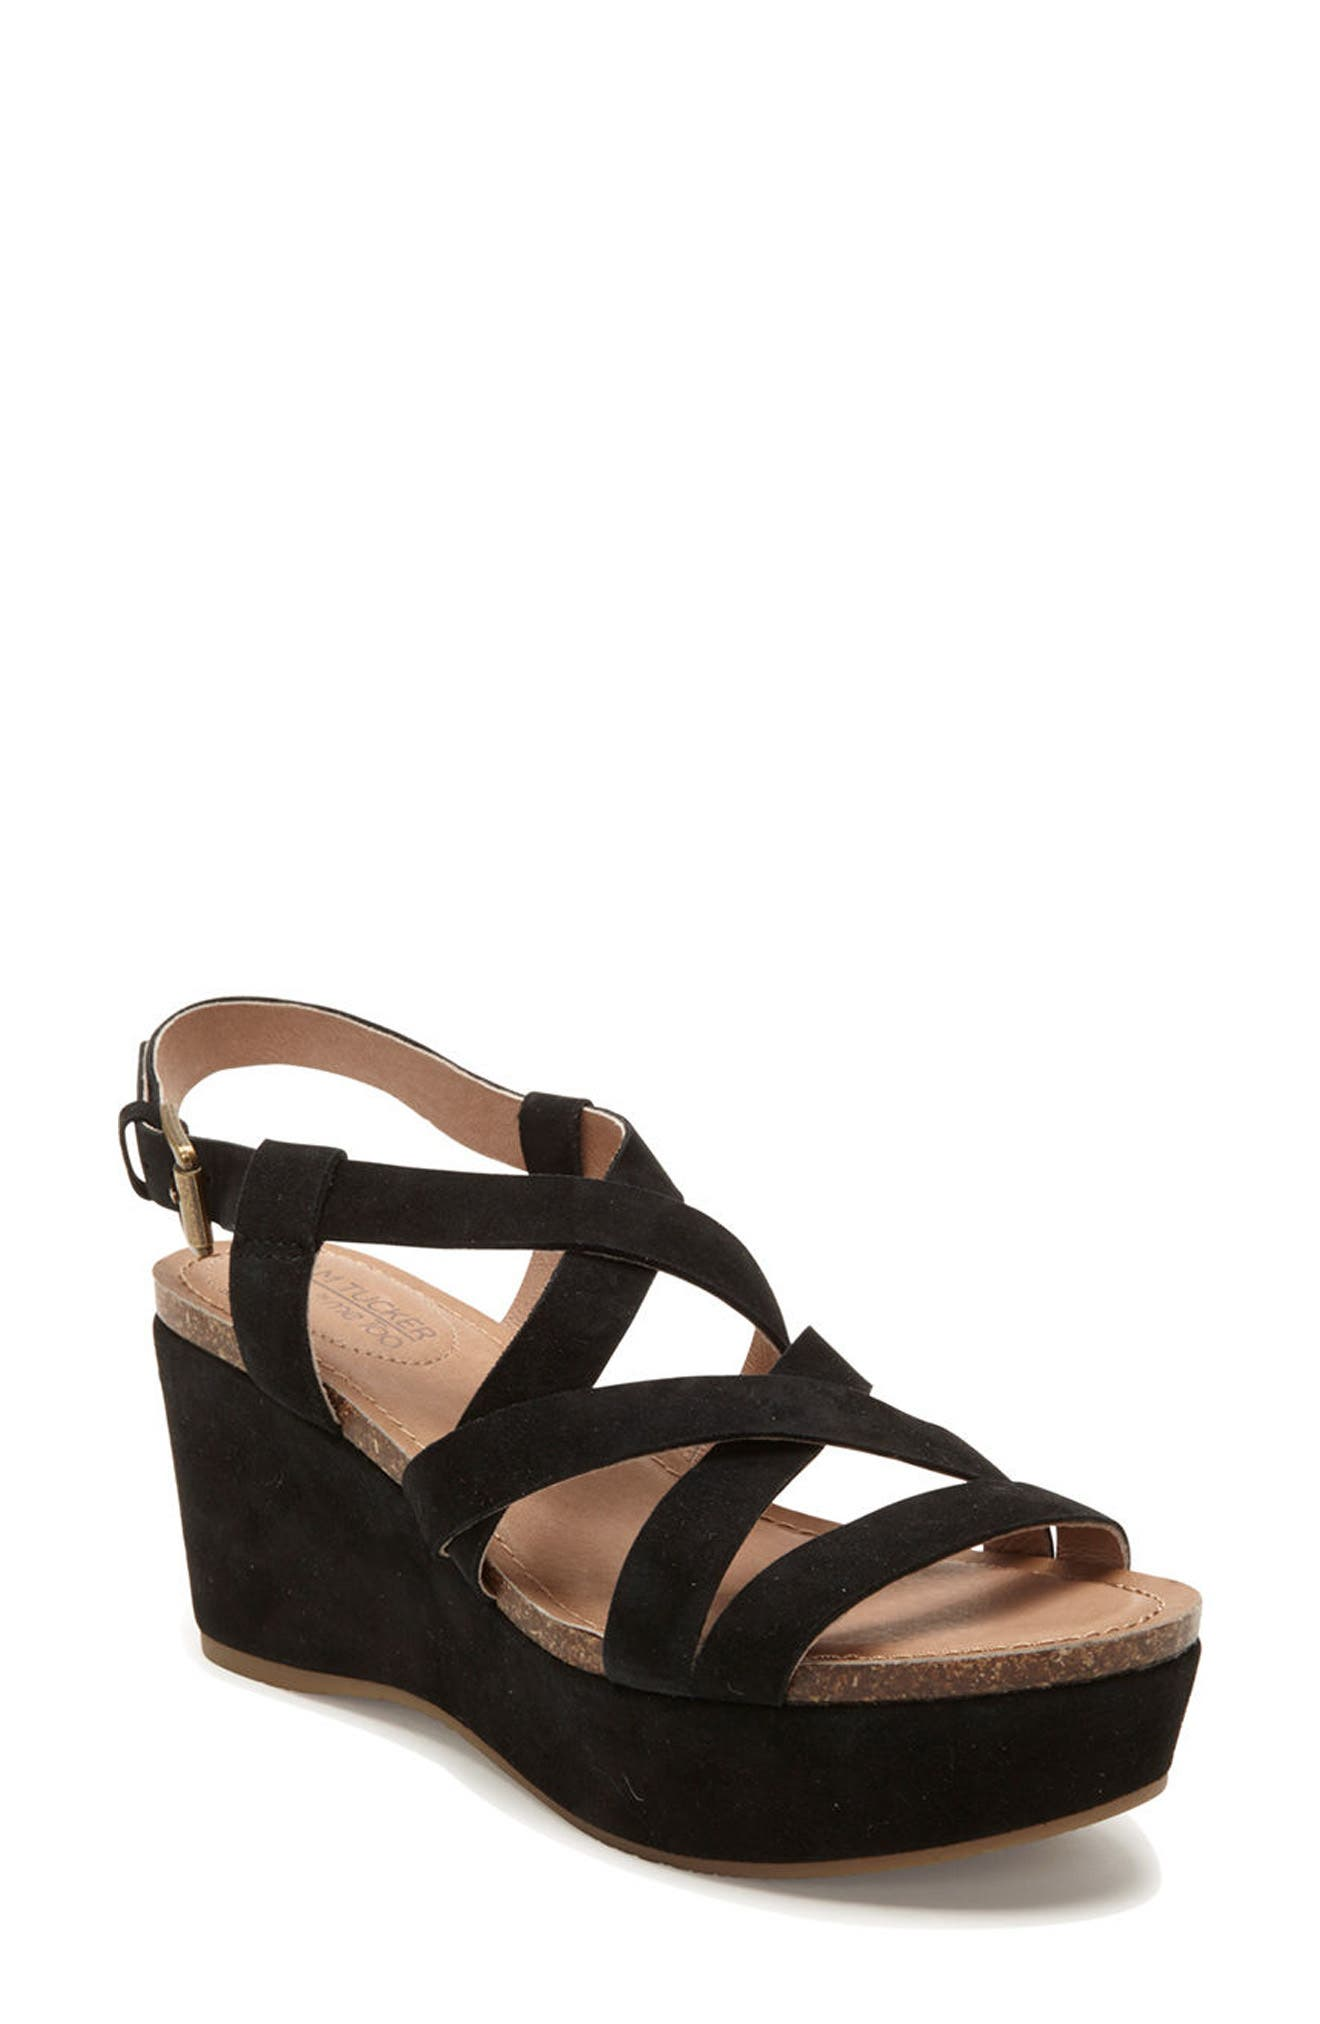 Adam Tucker Bria Strappy Sandal,                         Main,                         color, Black Suede